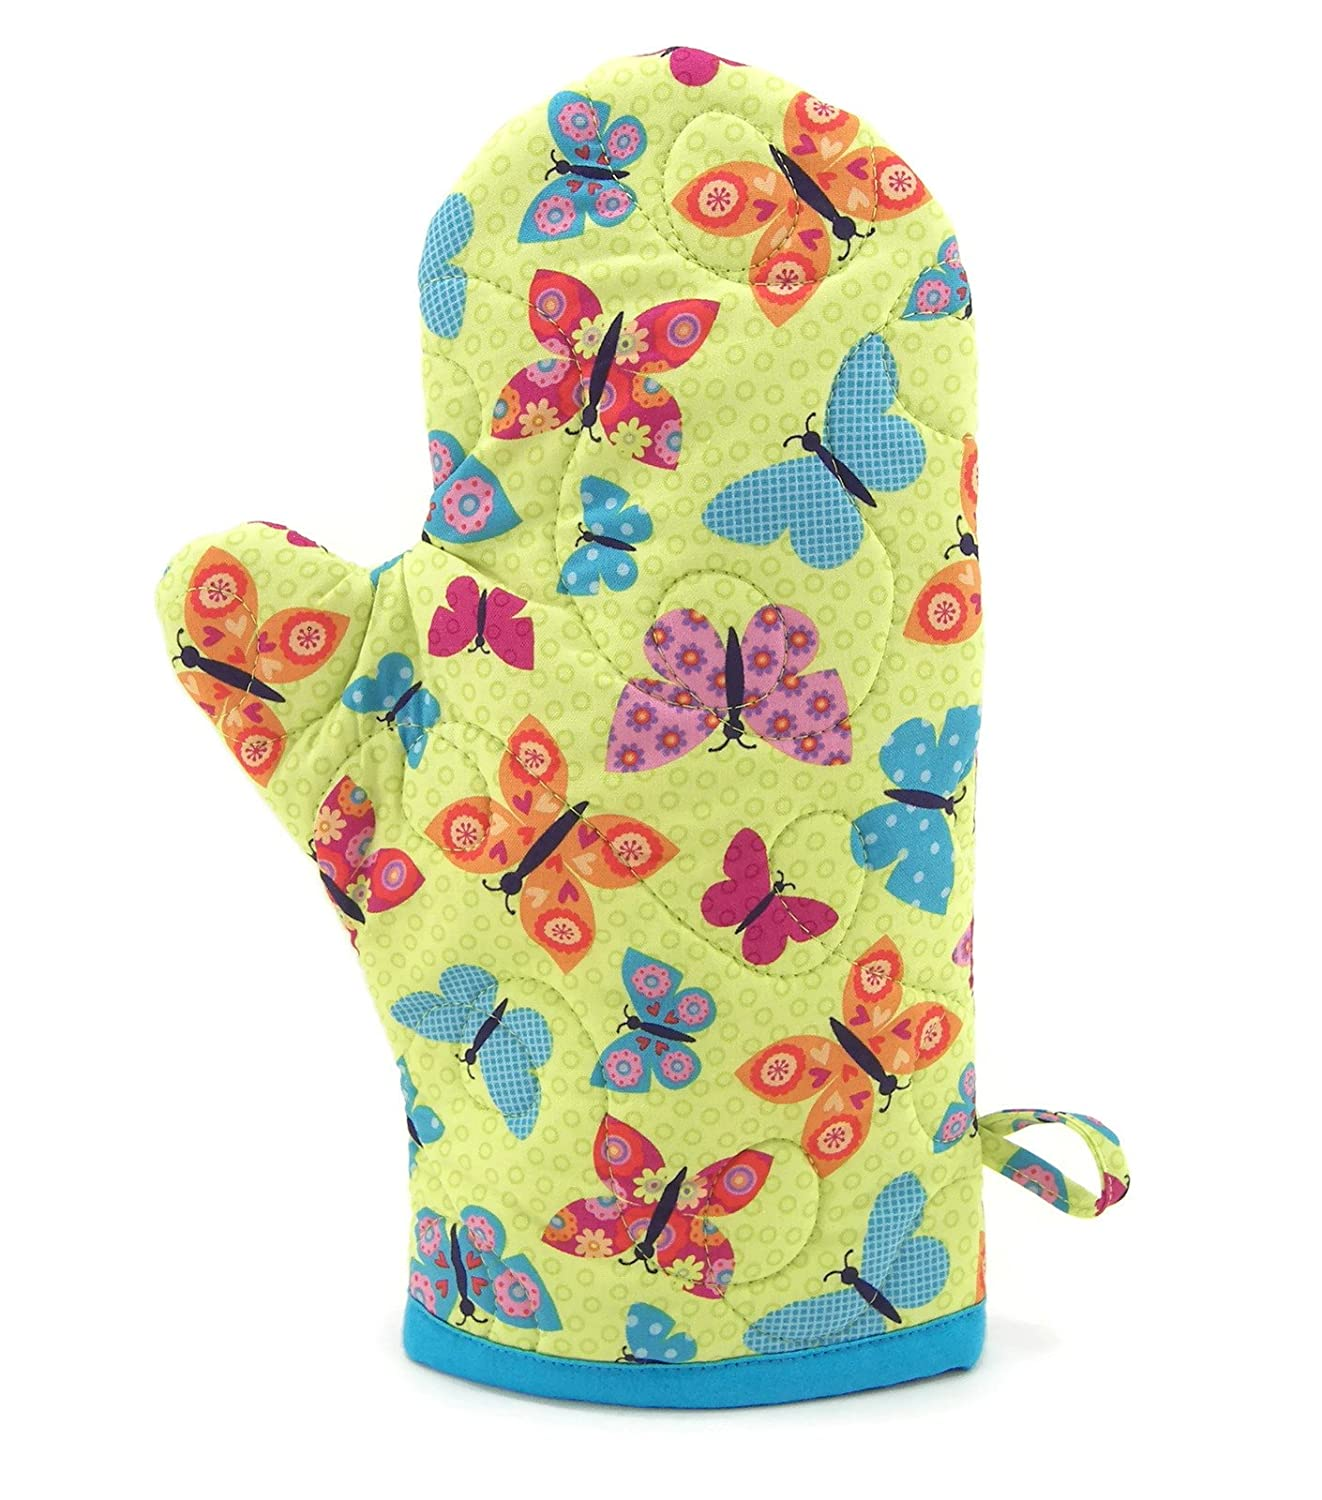 Butterfly Oven Mitt, Green and Turquoise Blue Quilted Cotton Oven Glove